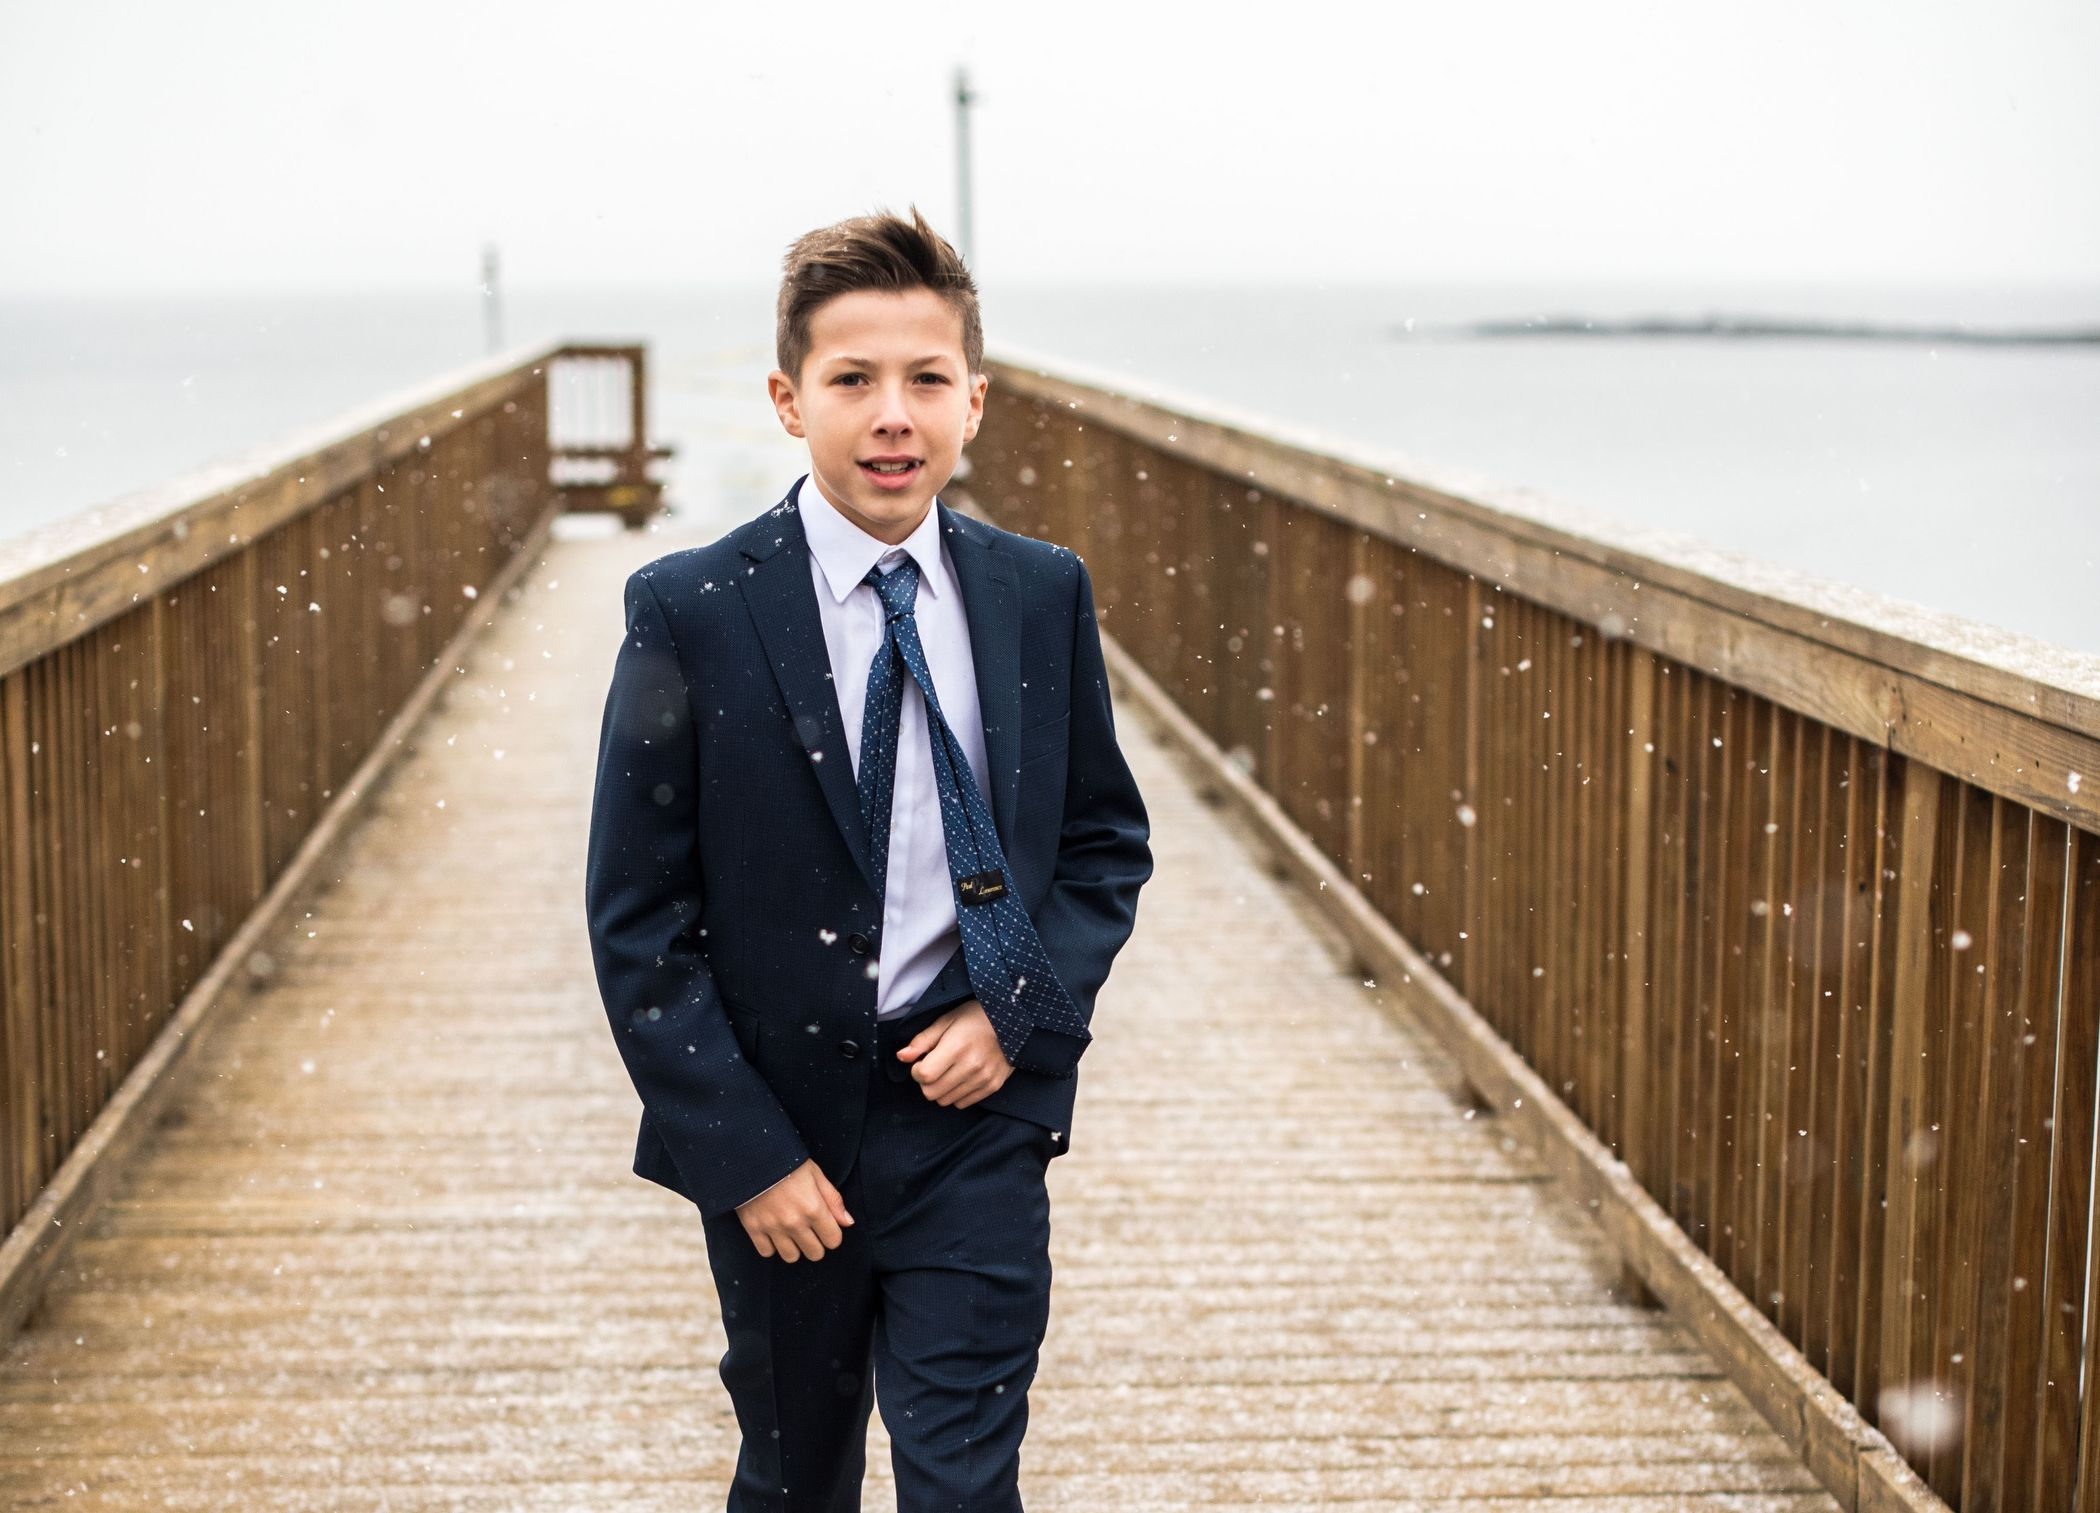 A Westchester Bar Mitzvah Portrait In Winter